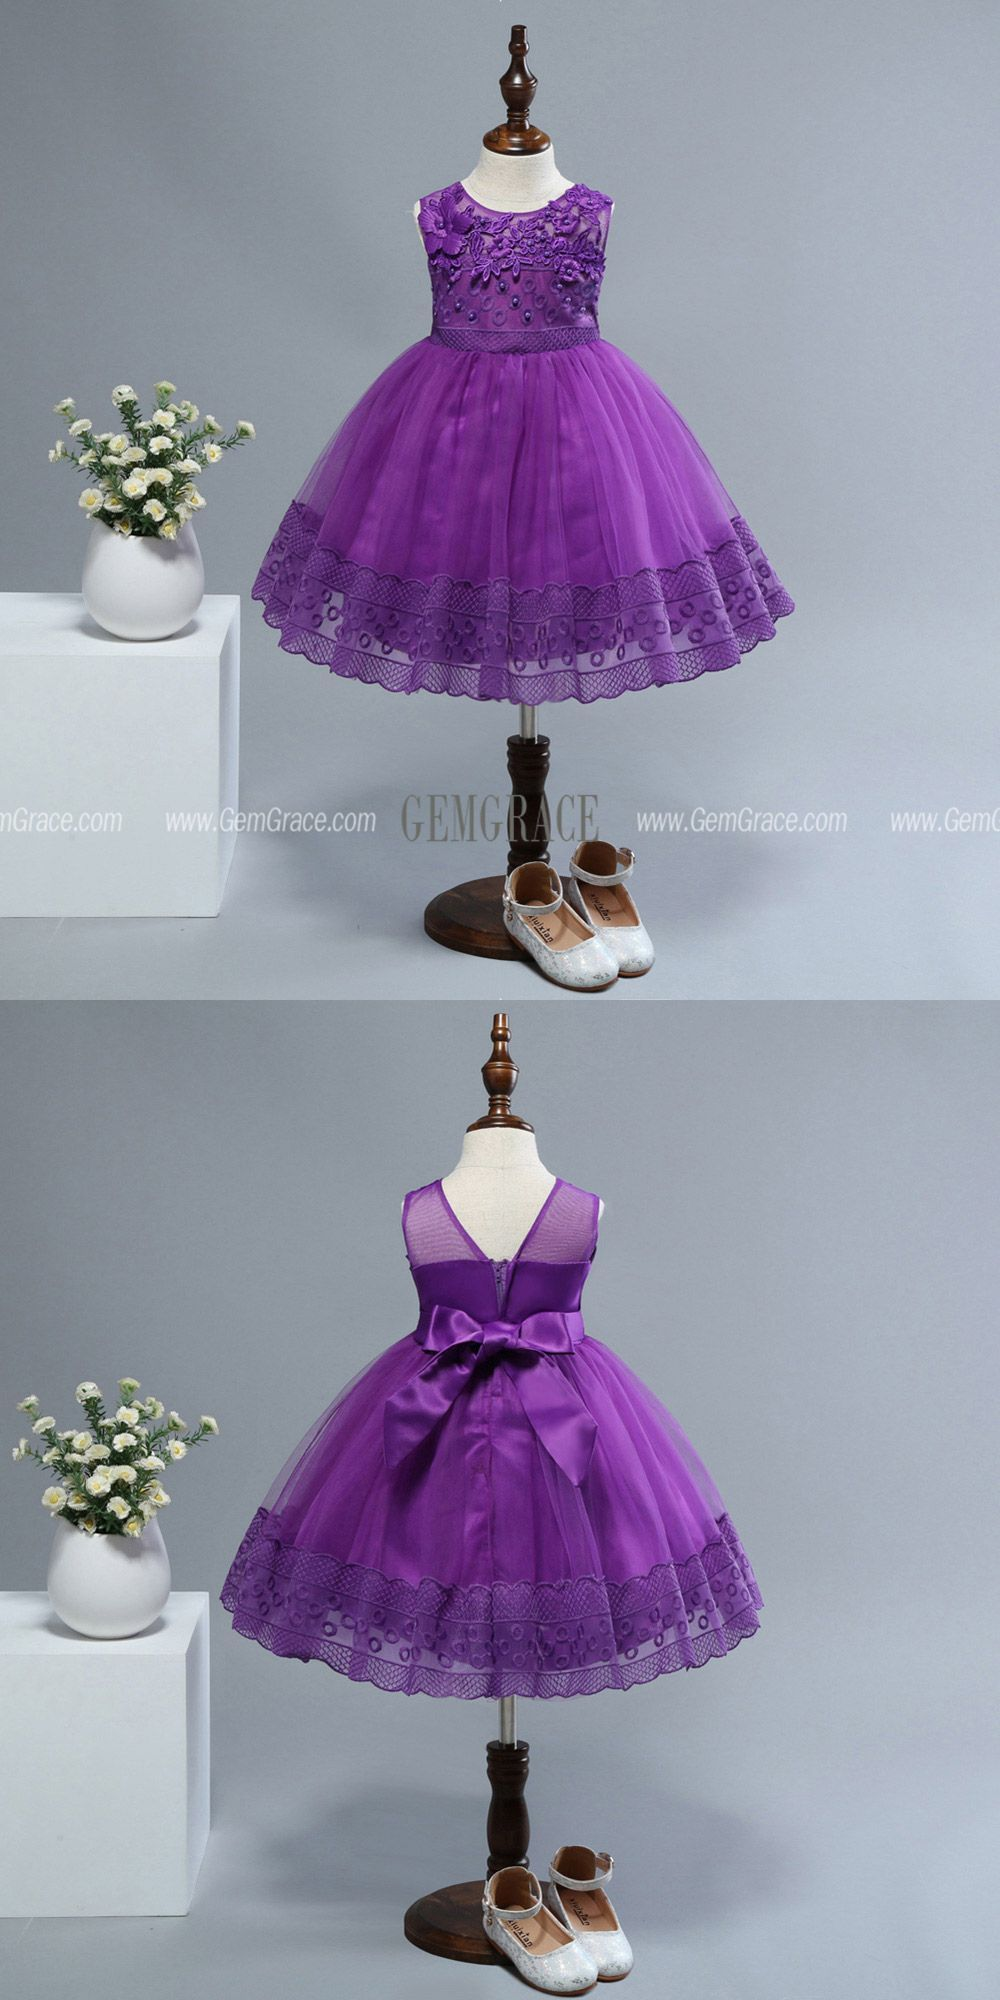 e692d1fd85741 $35.5 Cheap Purple Lace Short Flower Girl Dress For 2 Year Old #QX ...